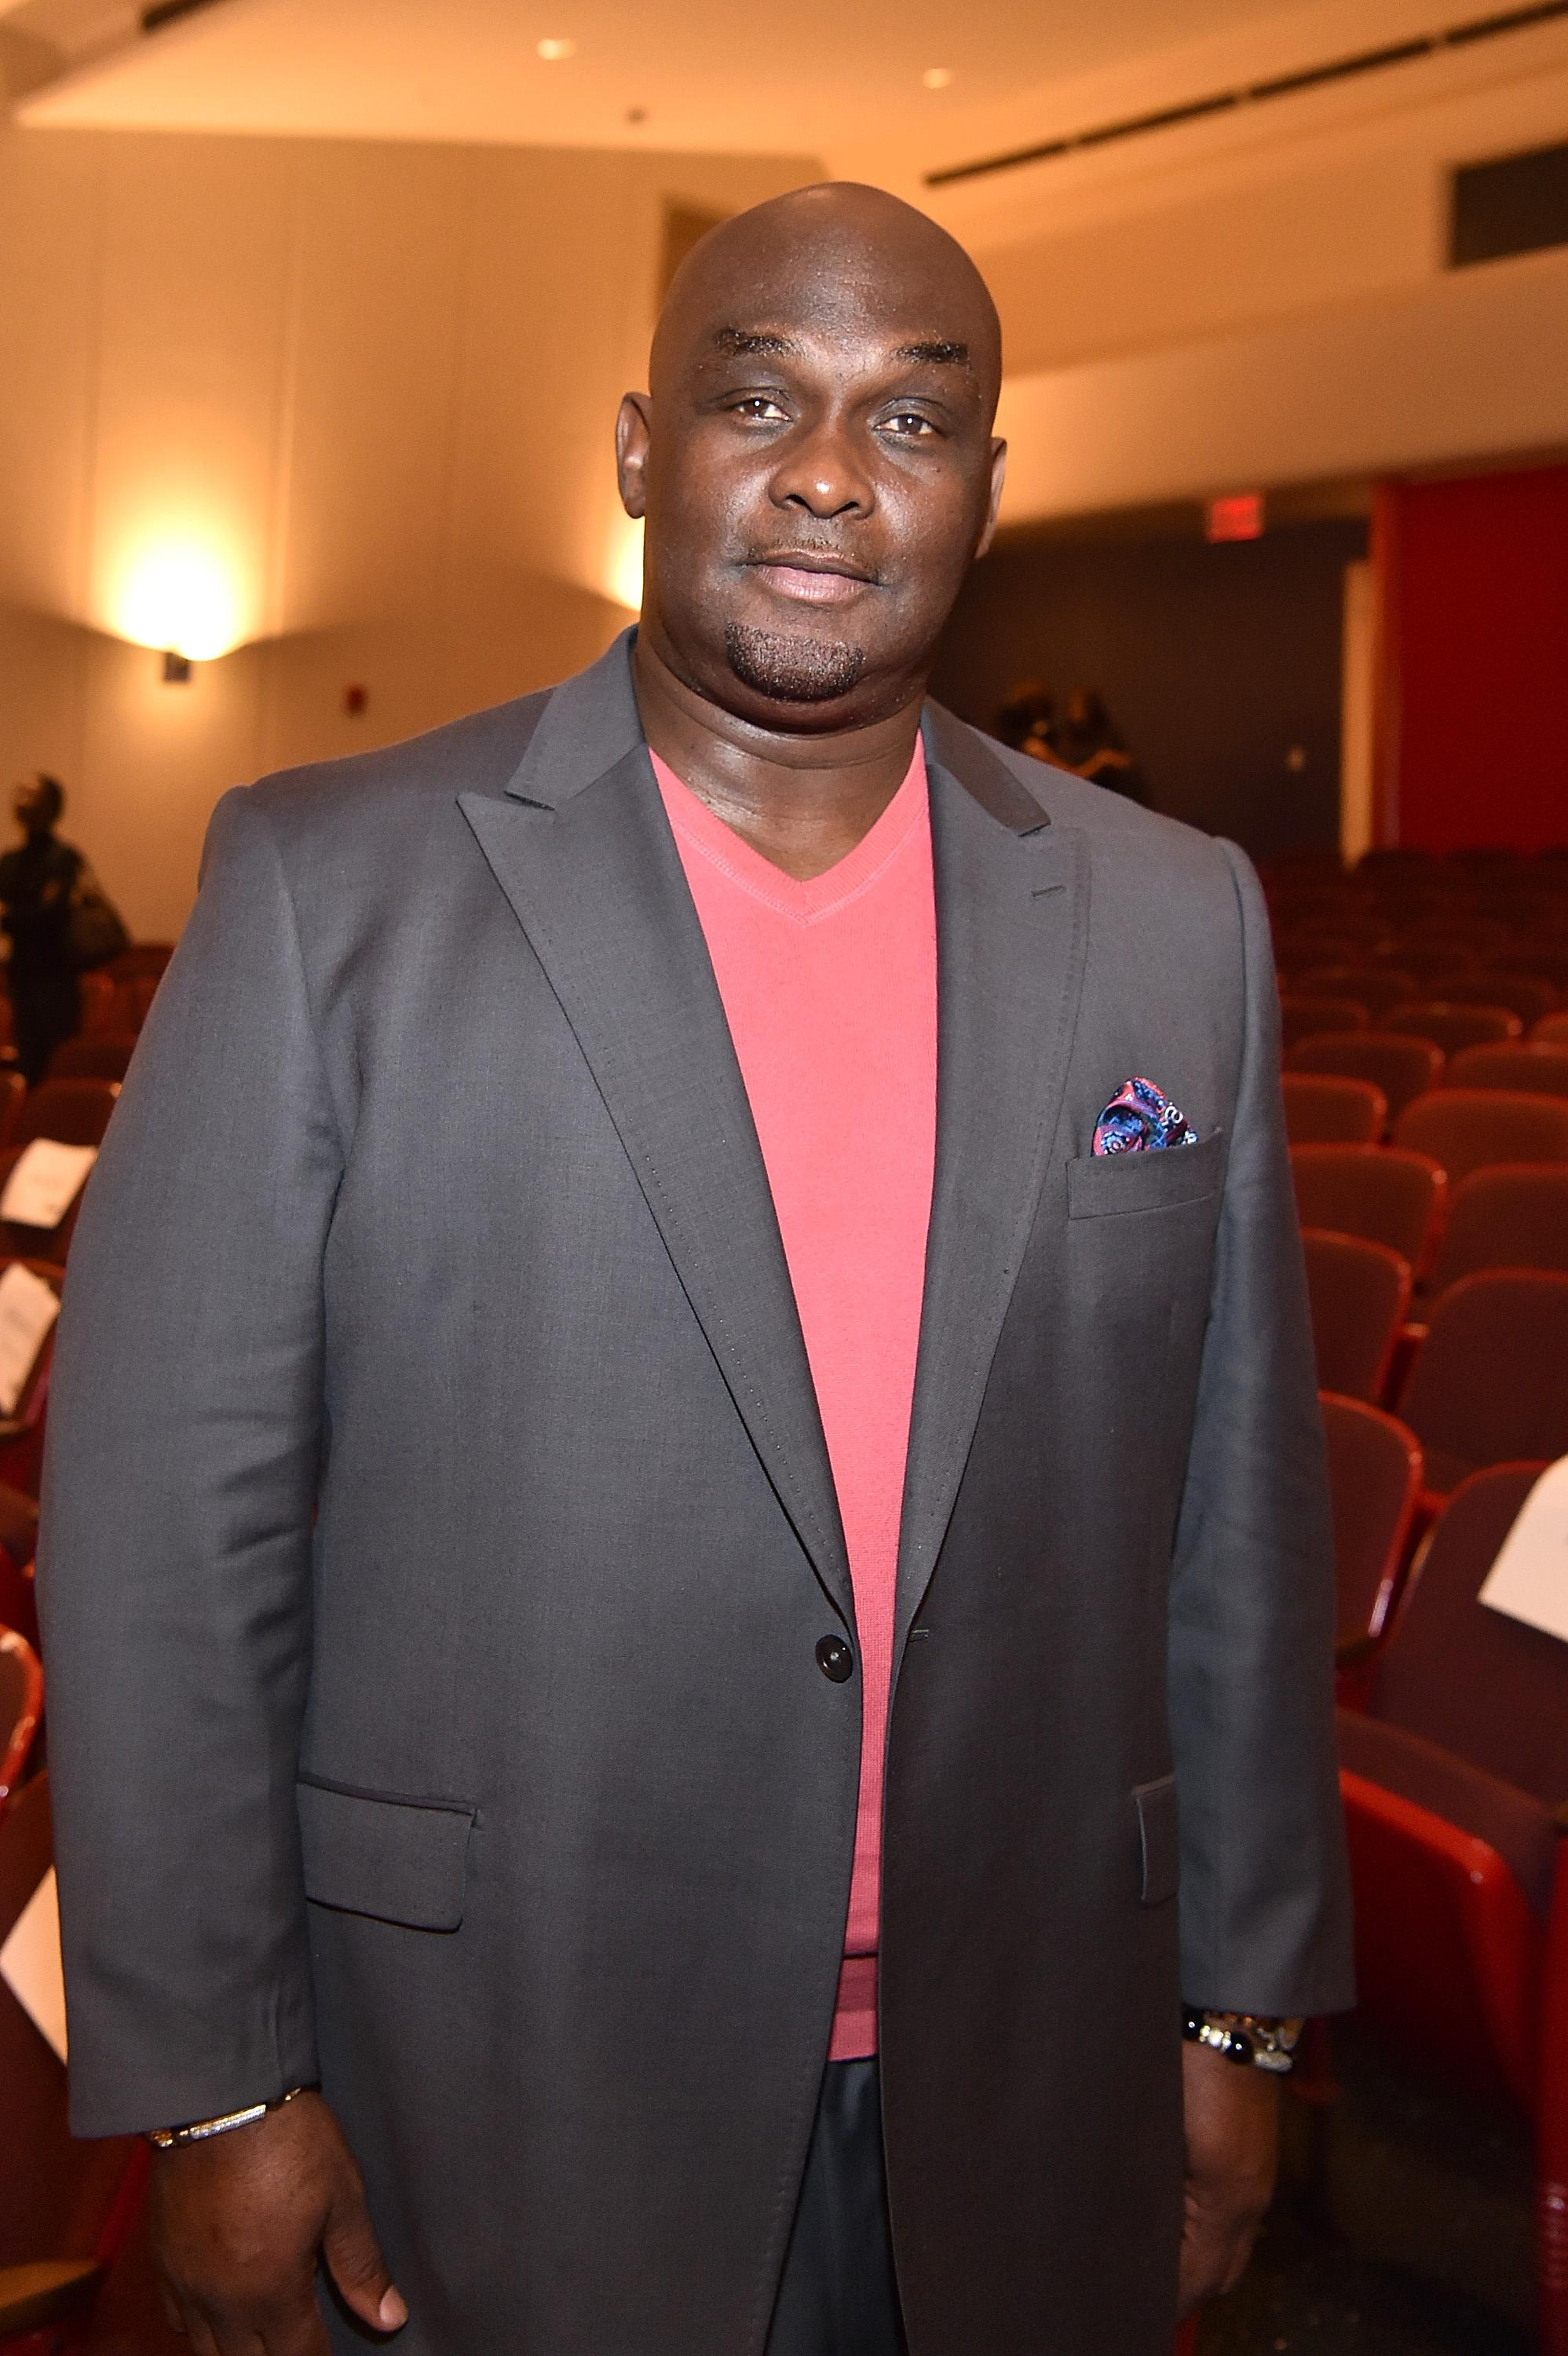 how tall is tommy ford